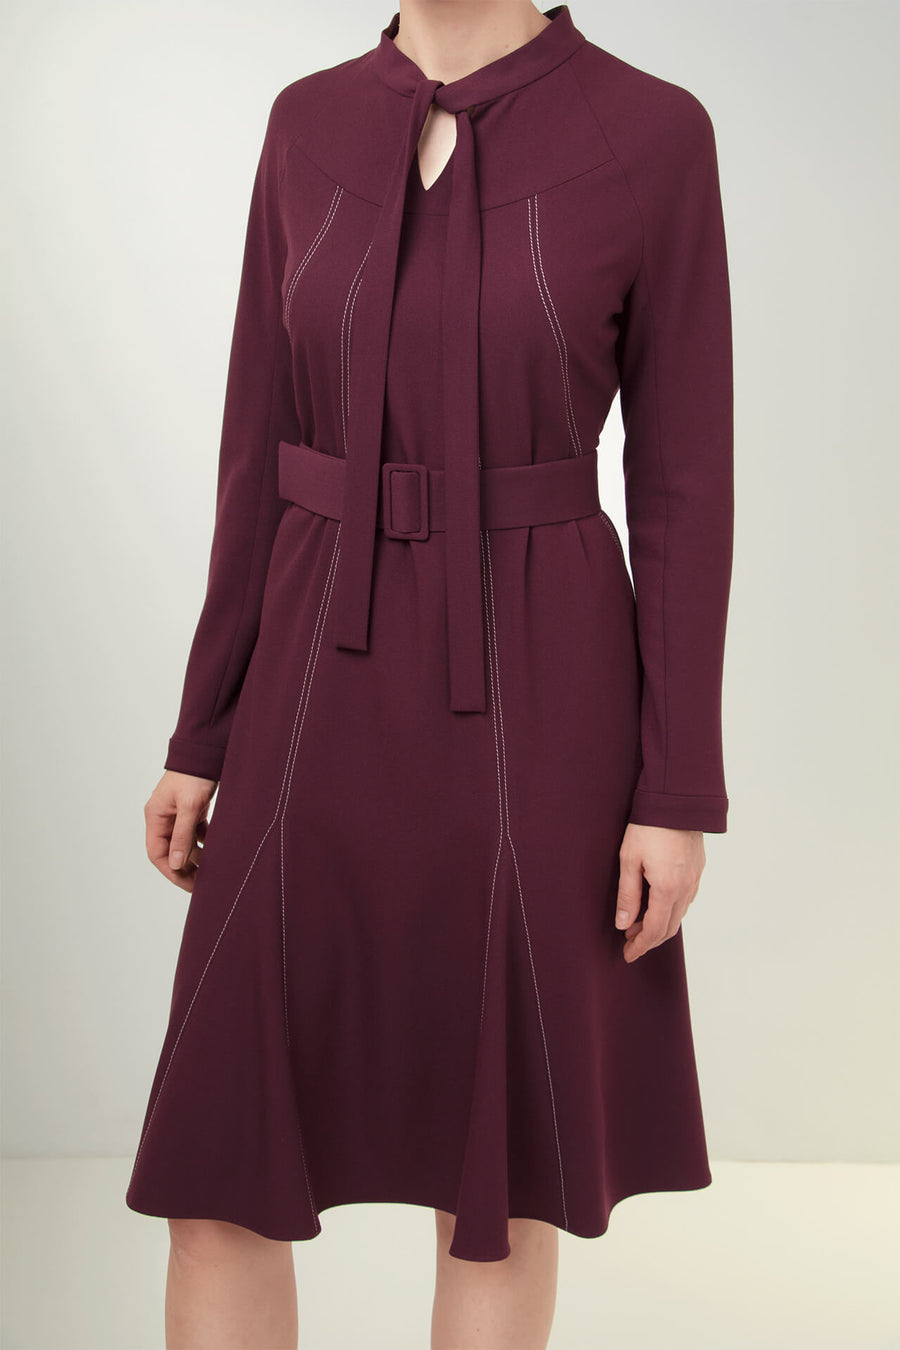 Burgundy Viscose-Blend Crepe Dress